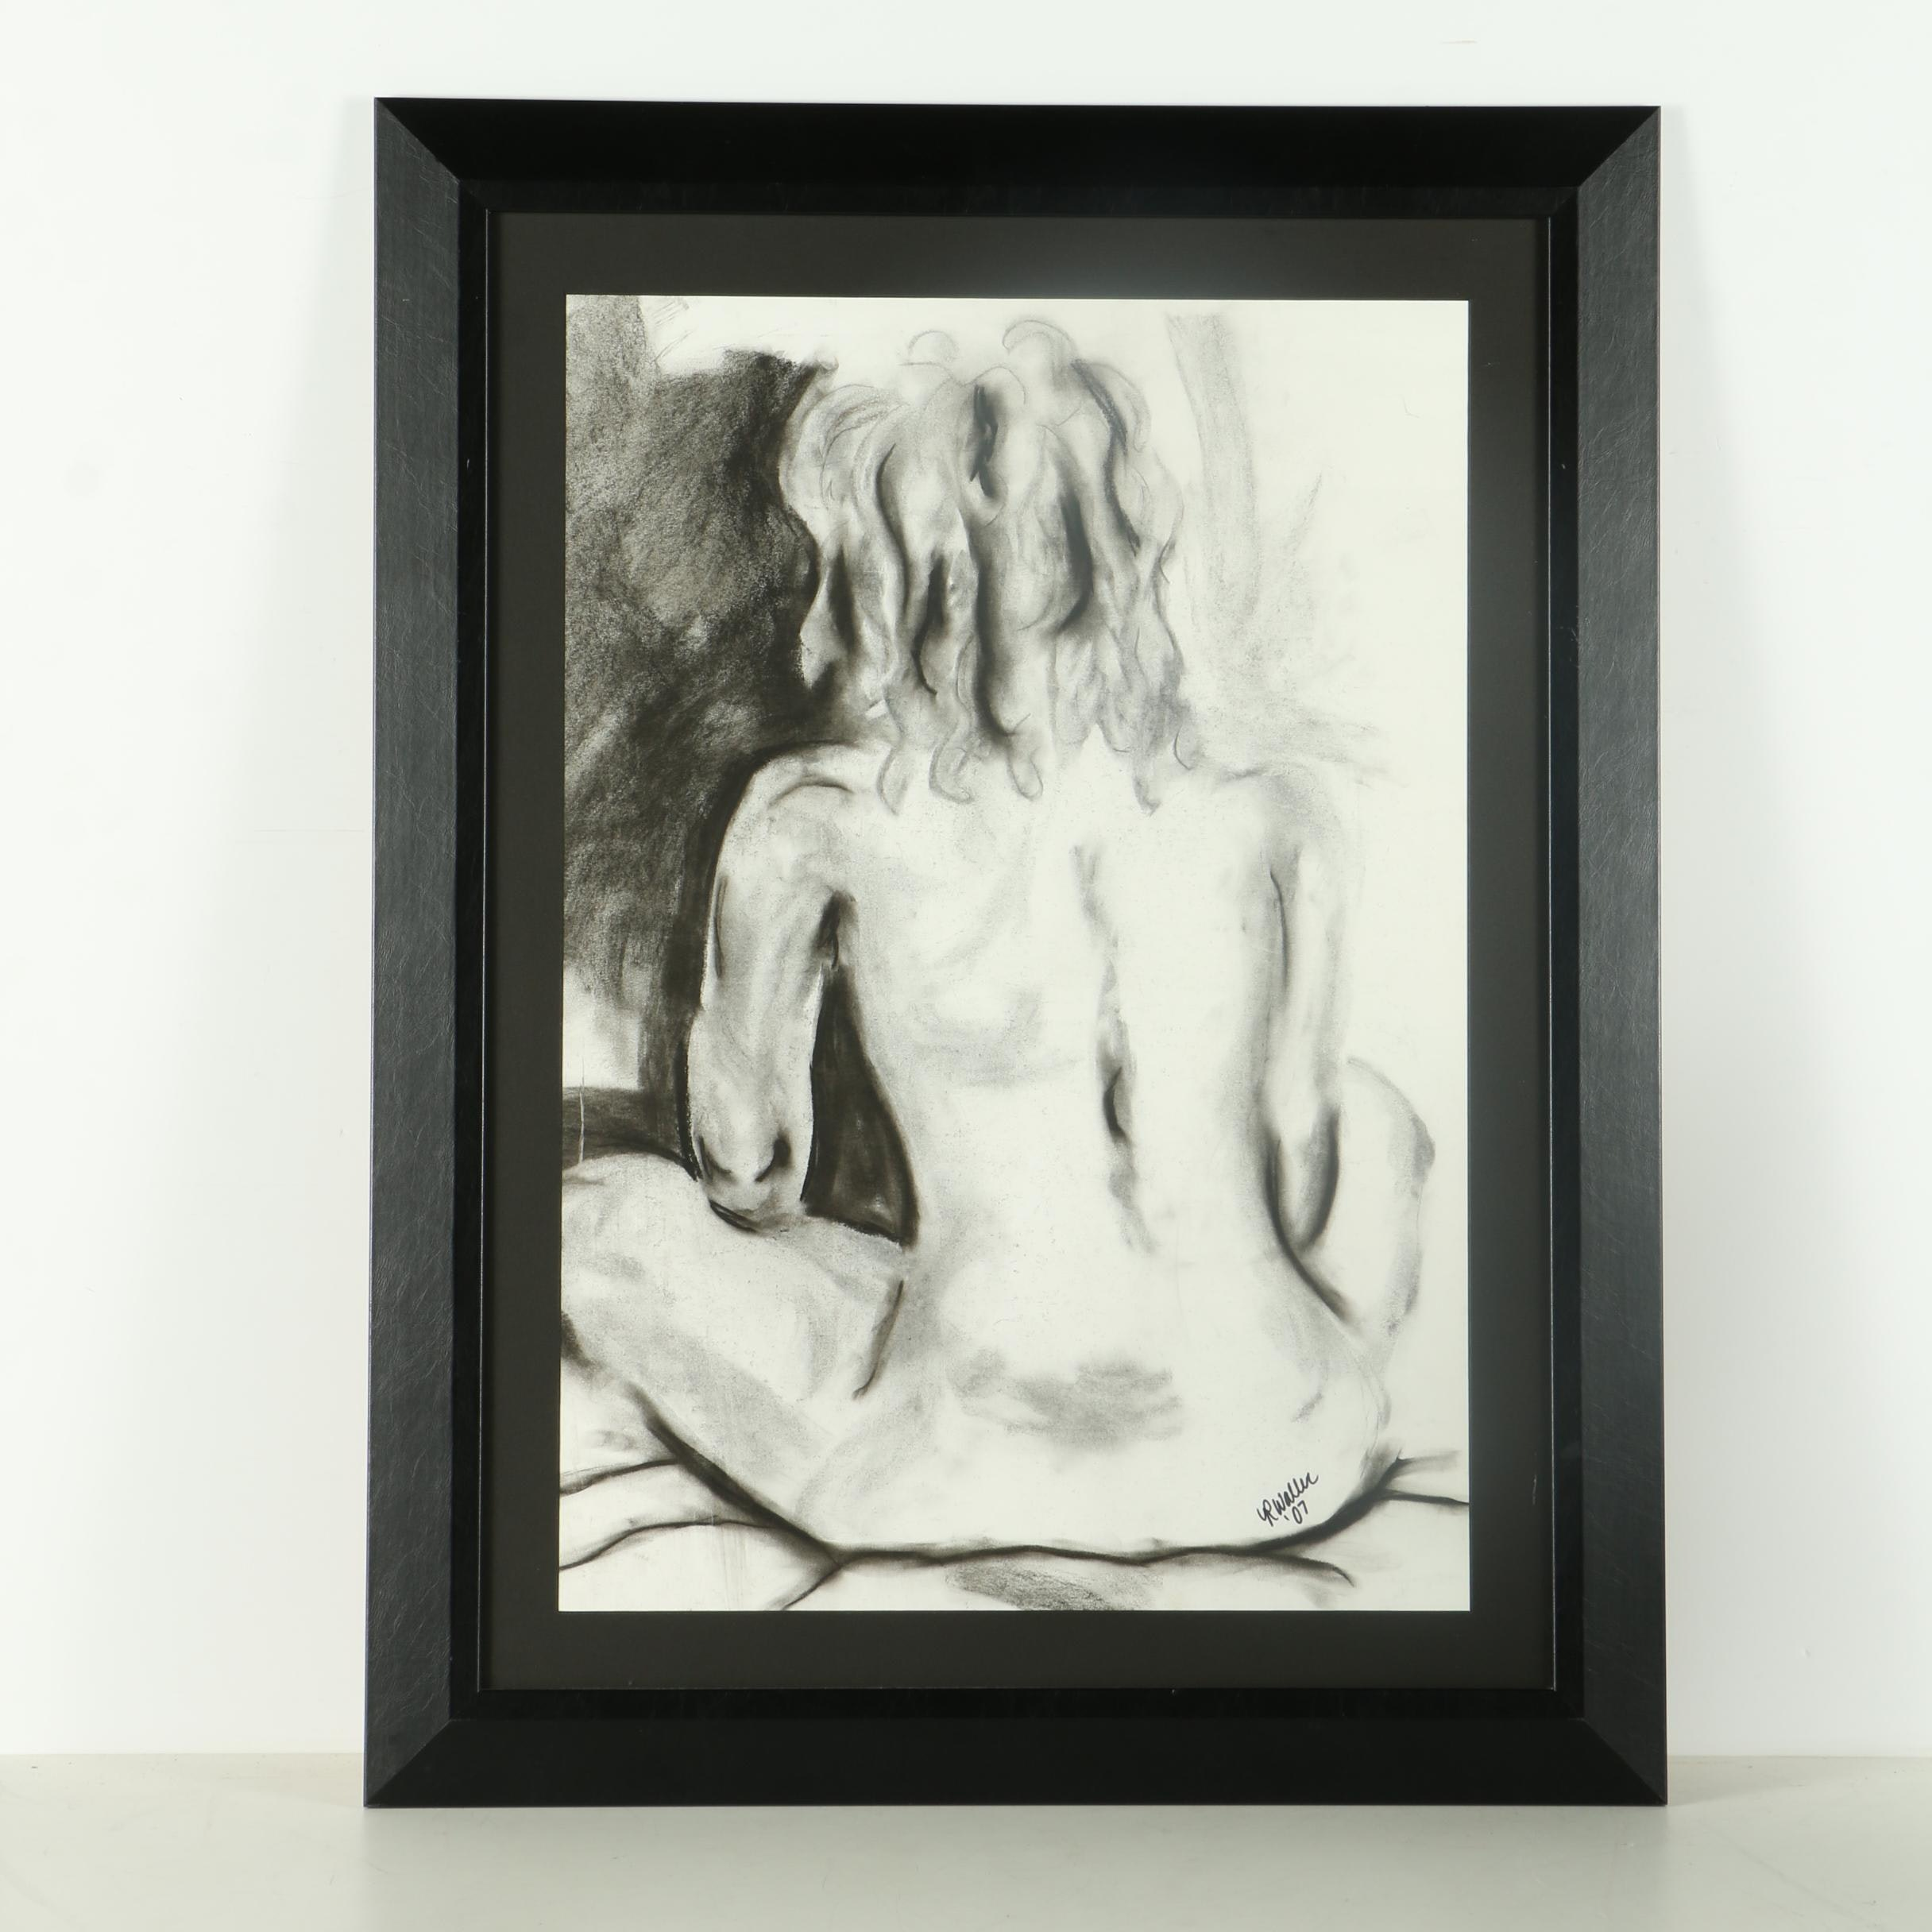 R. Waller Charcoal Drawing of Nude Figure